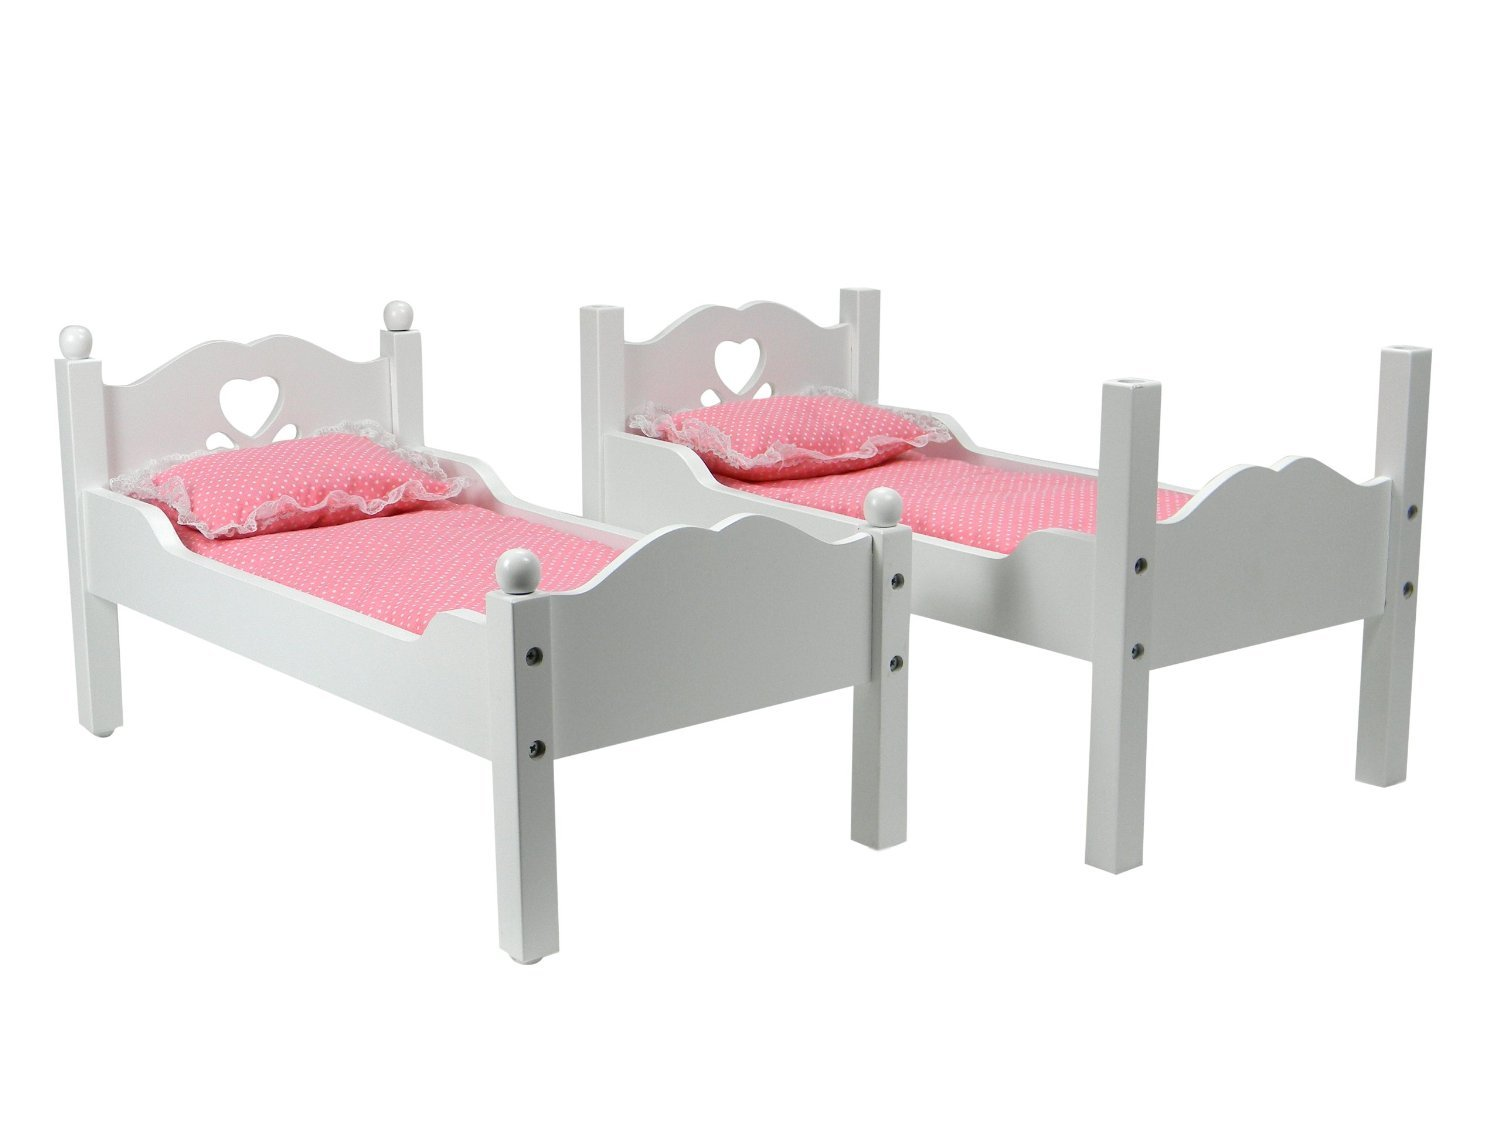 18  Doll Furniture, Bunk Bed in White Cutout Design, Ladder & 2 Doll Bedding Sets, For 18 Inch American Girl Dolls & More  Also Breaks Down into Two Separate White Beds